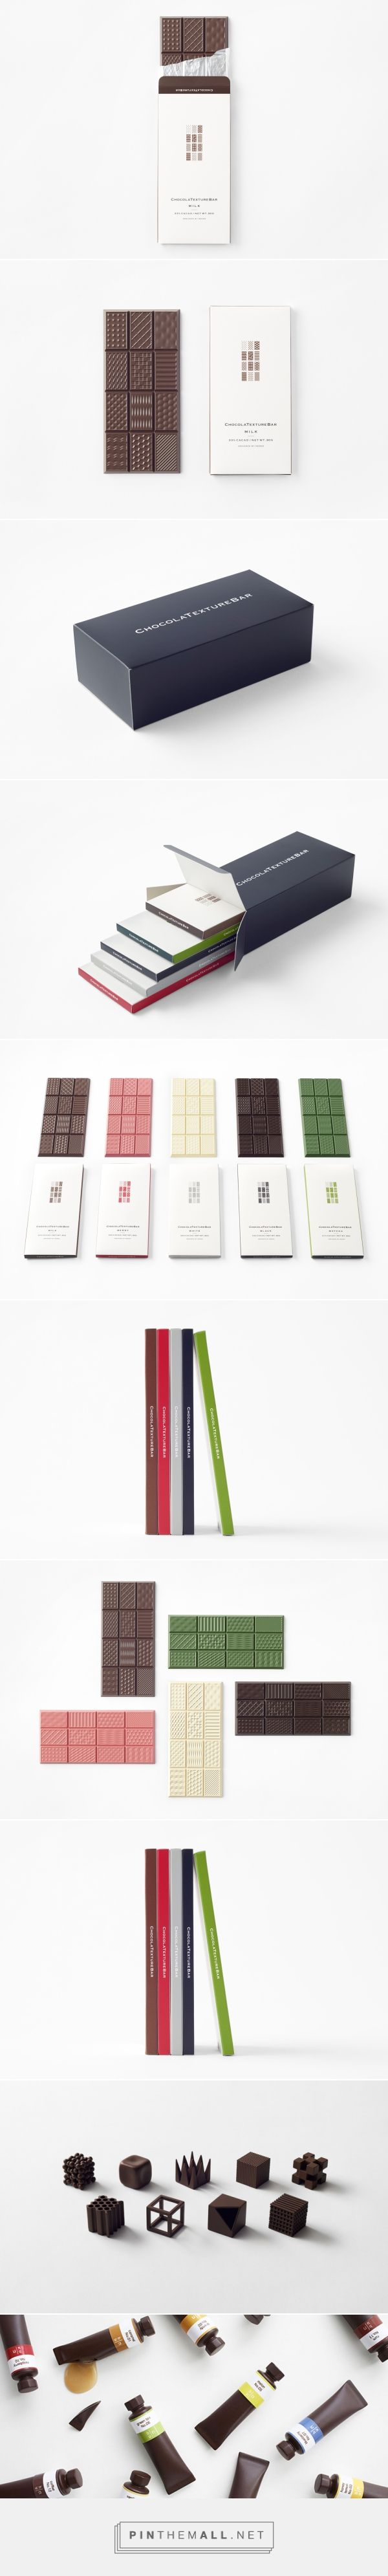 nendo Chocolate Design • Selectism - created via https://pinthemall.net